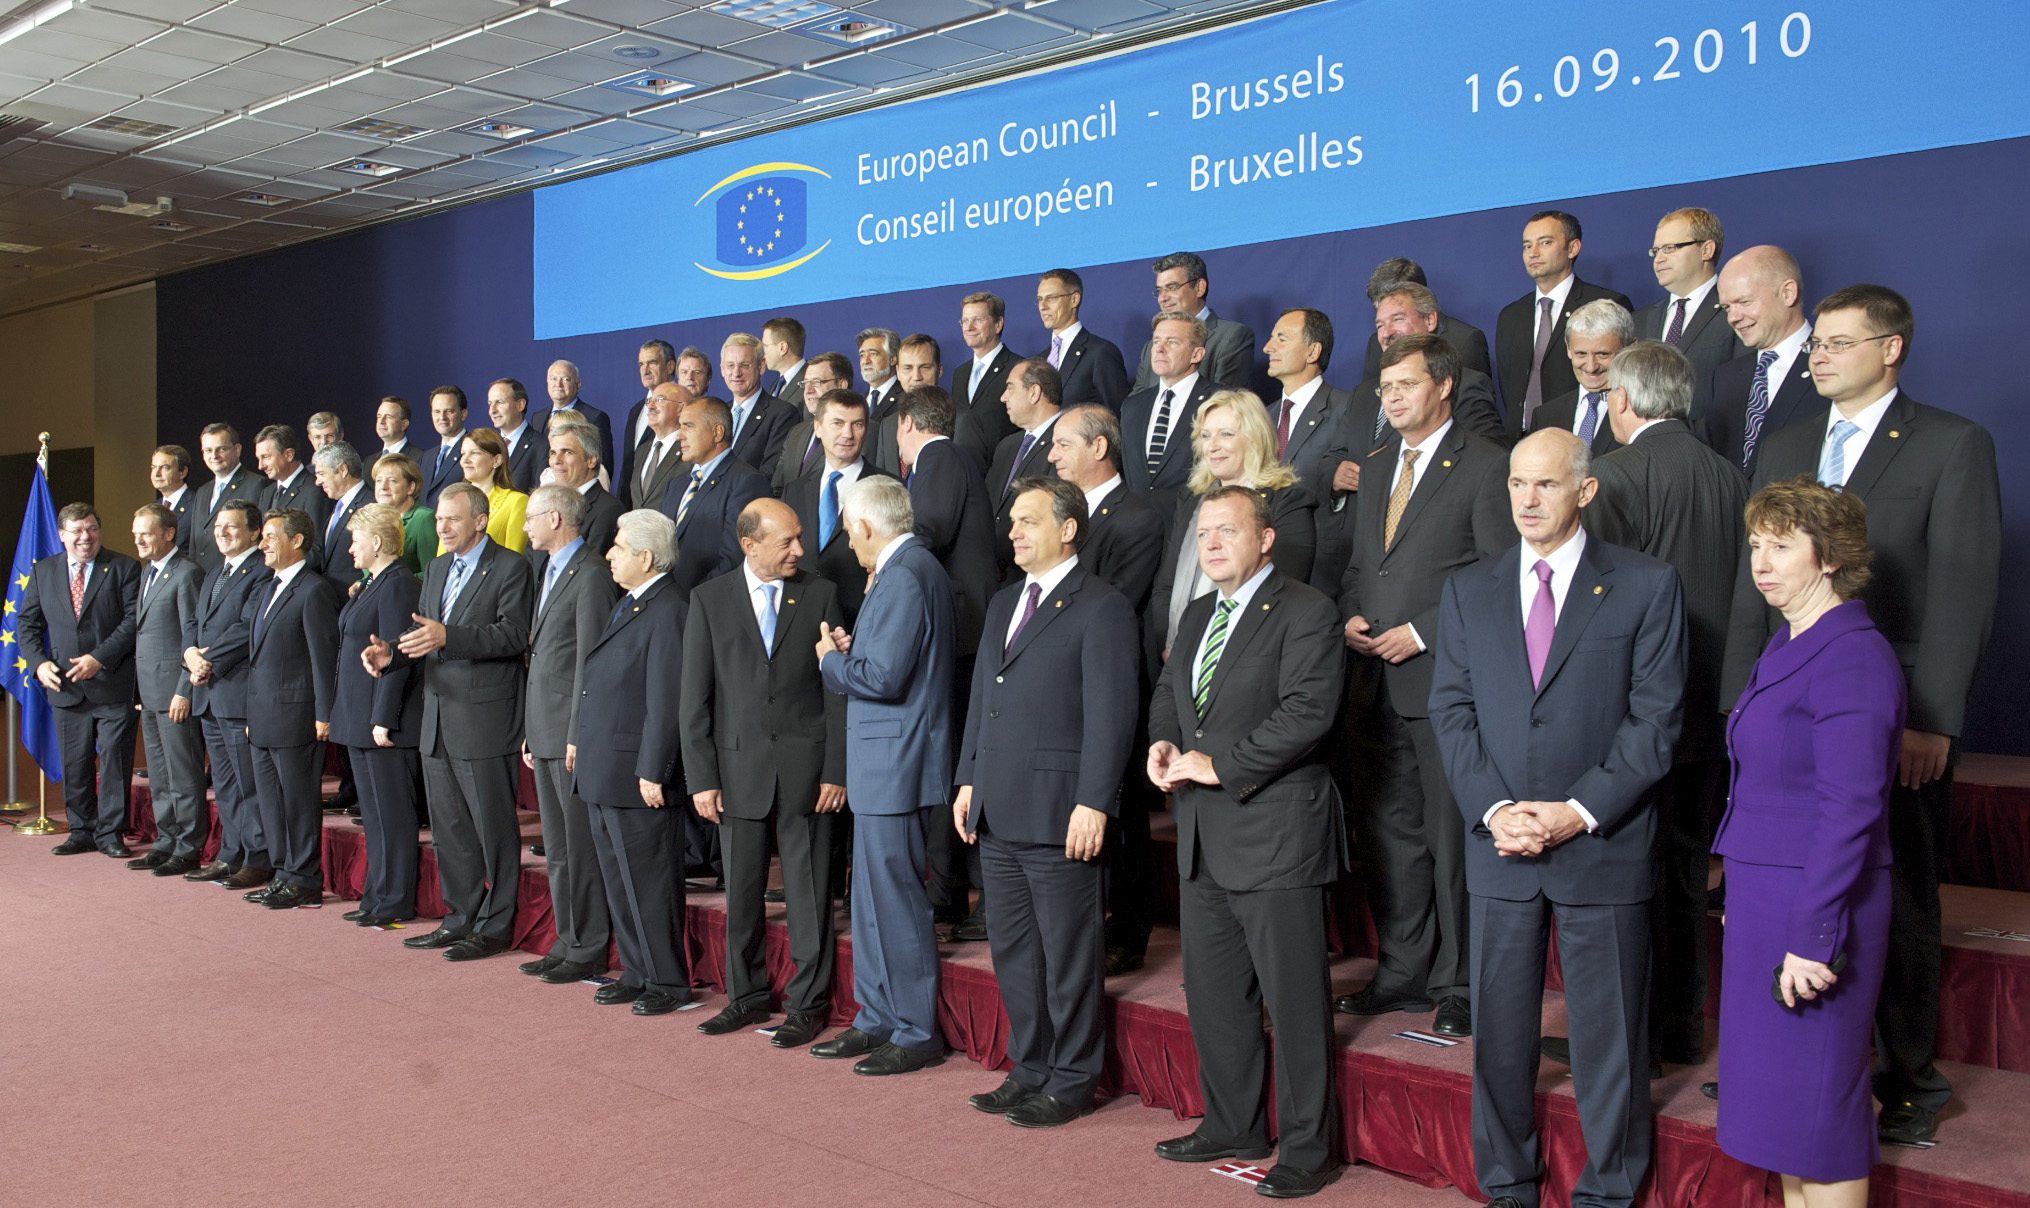 Image result for wikimedia commons european council